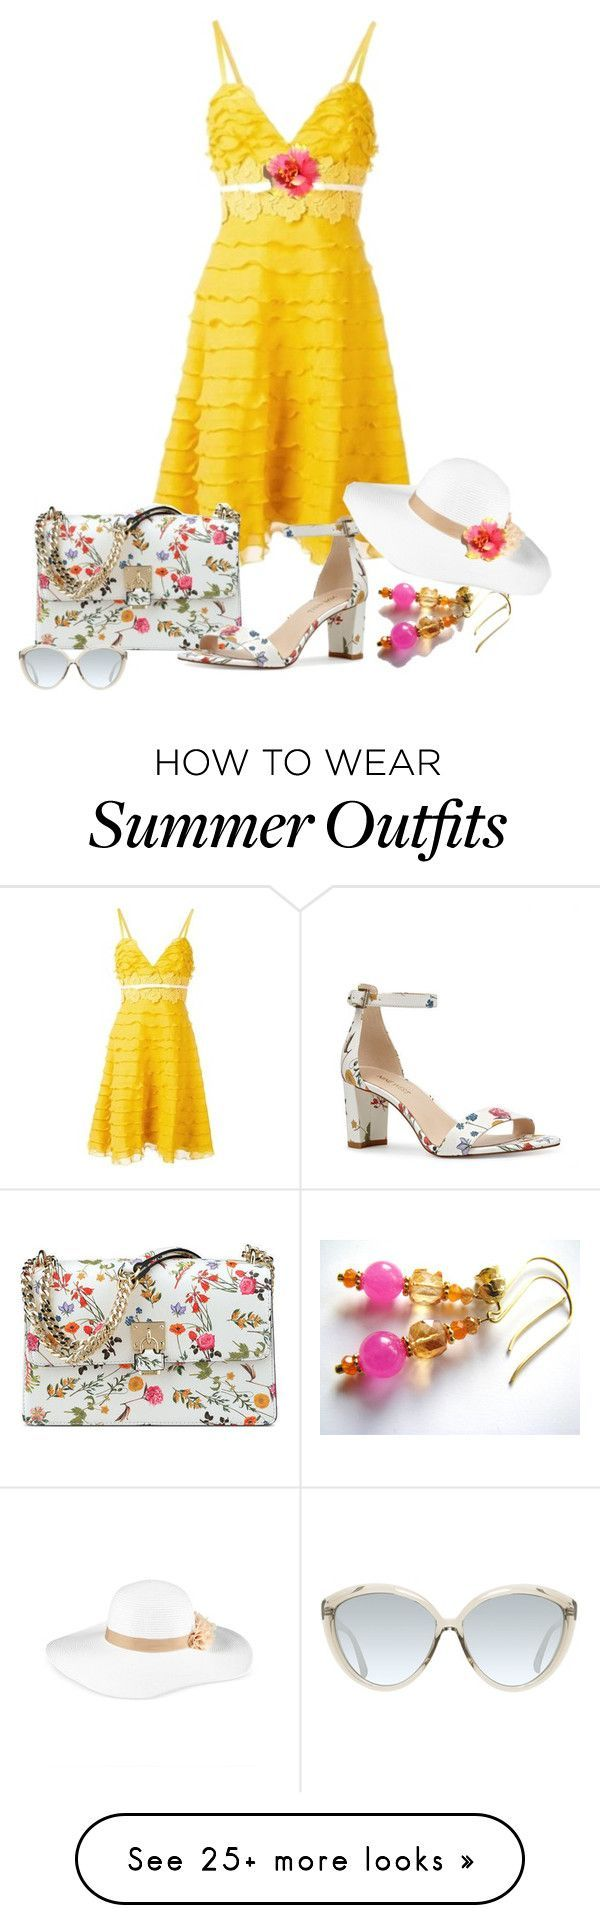 Summer outfits yellow for summer by belladonnasjoy on polyvore